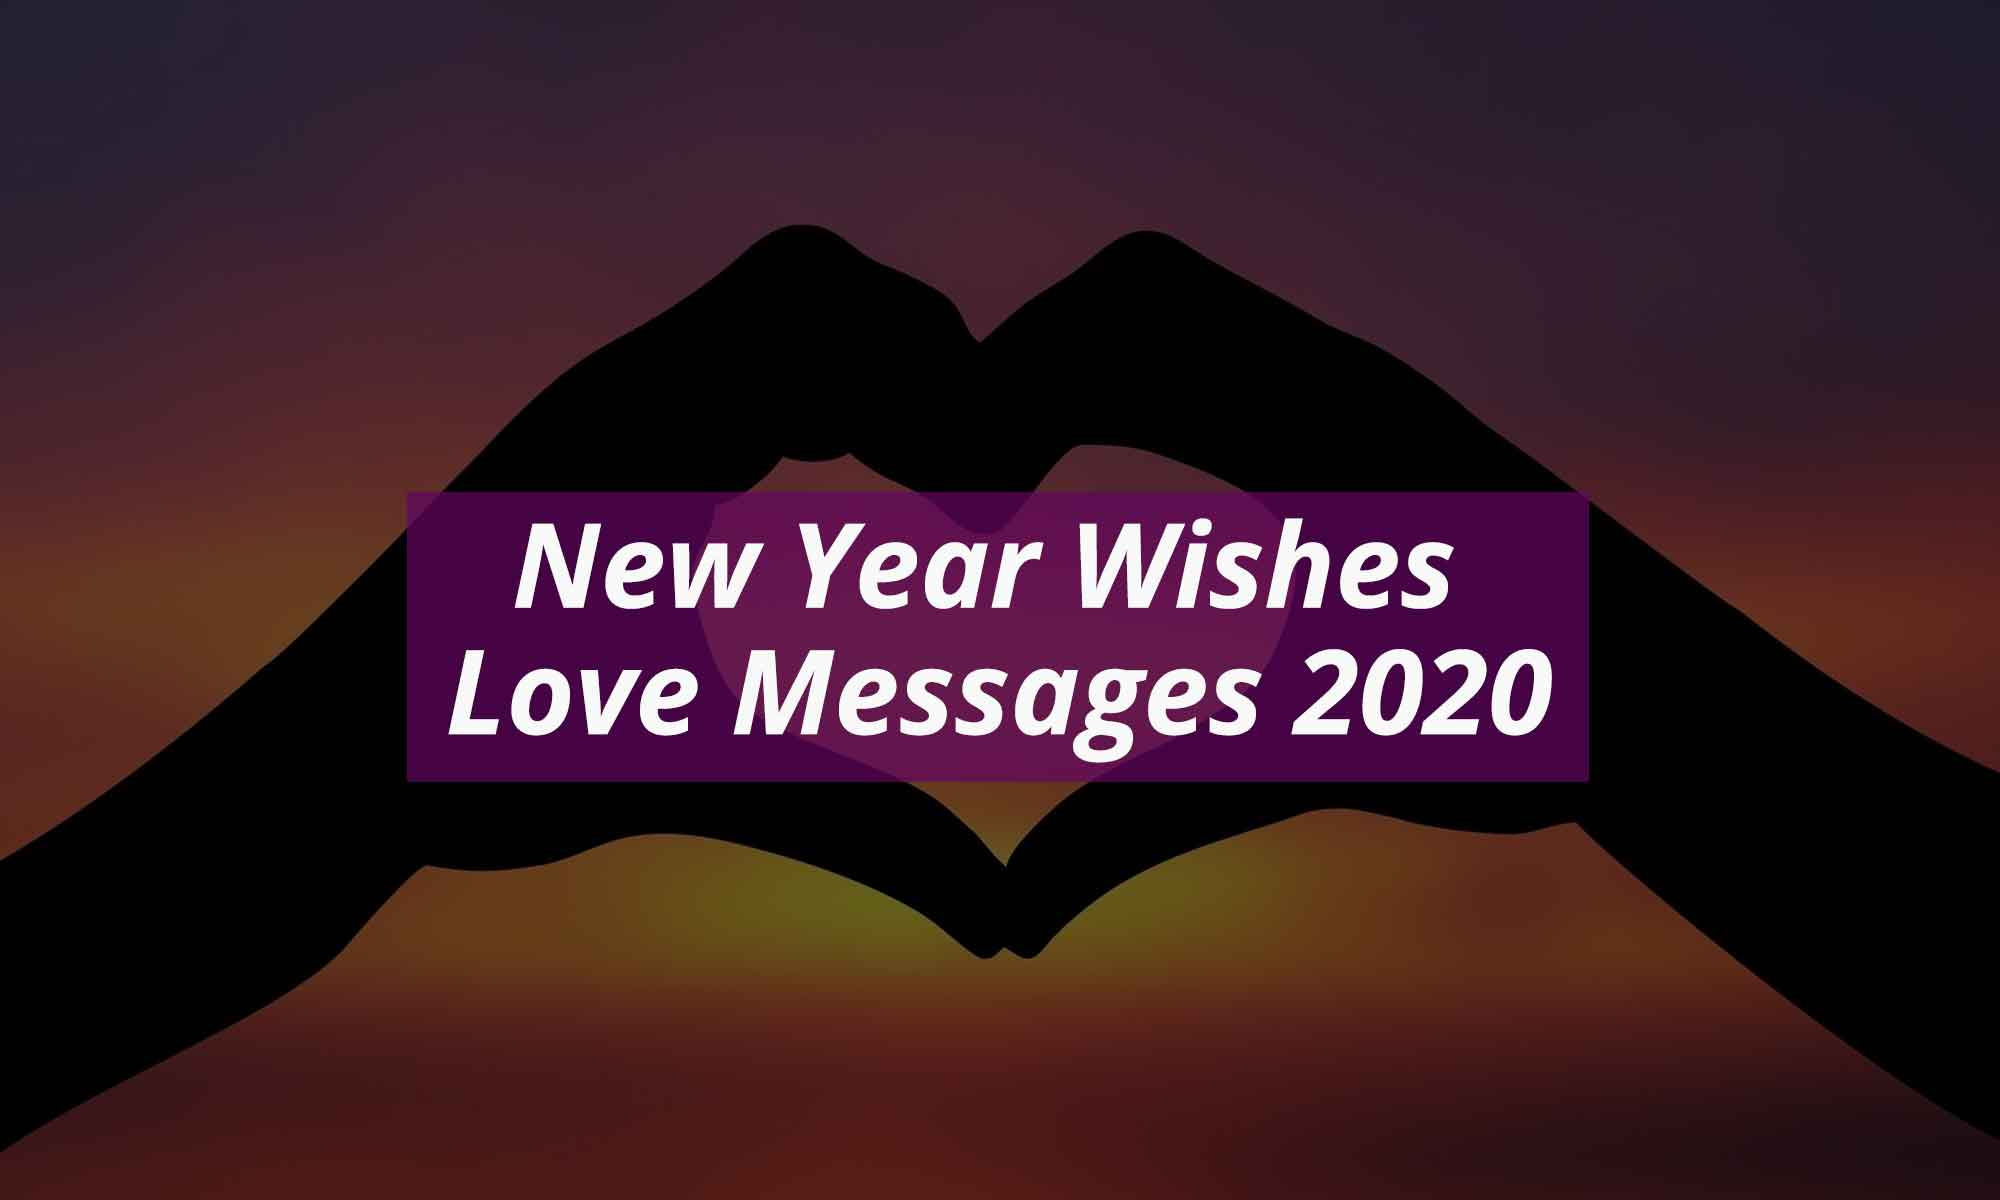 New Year Wishes Love Messages